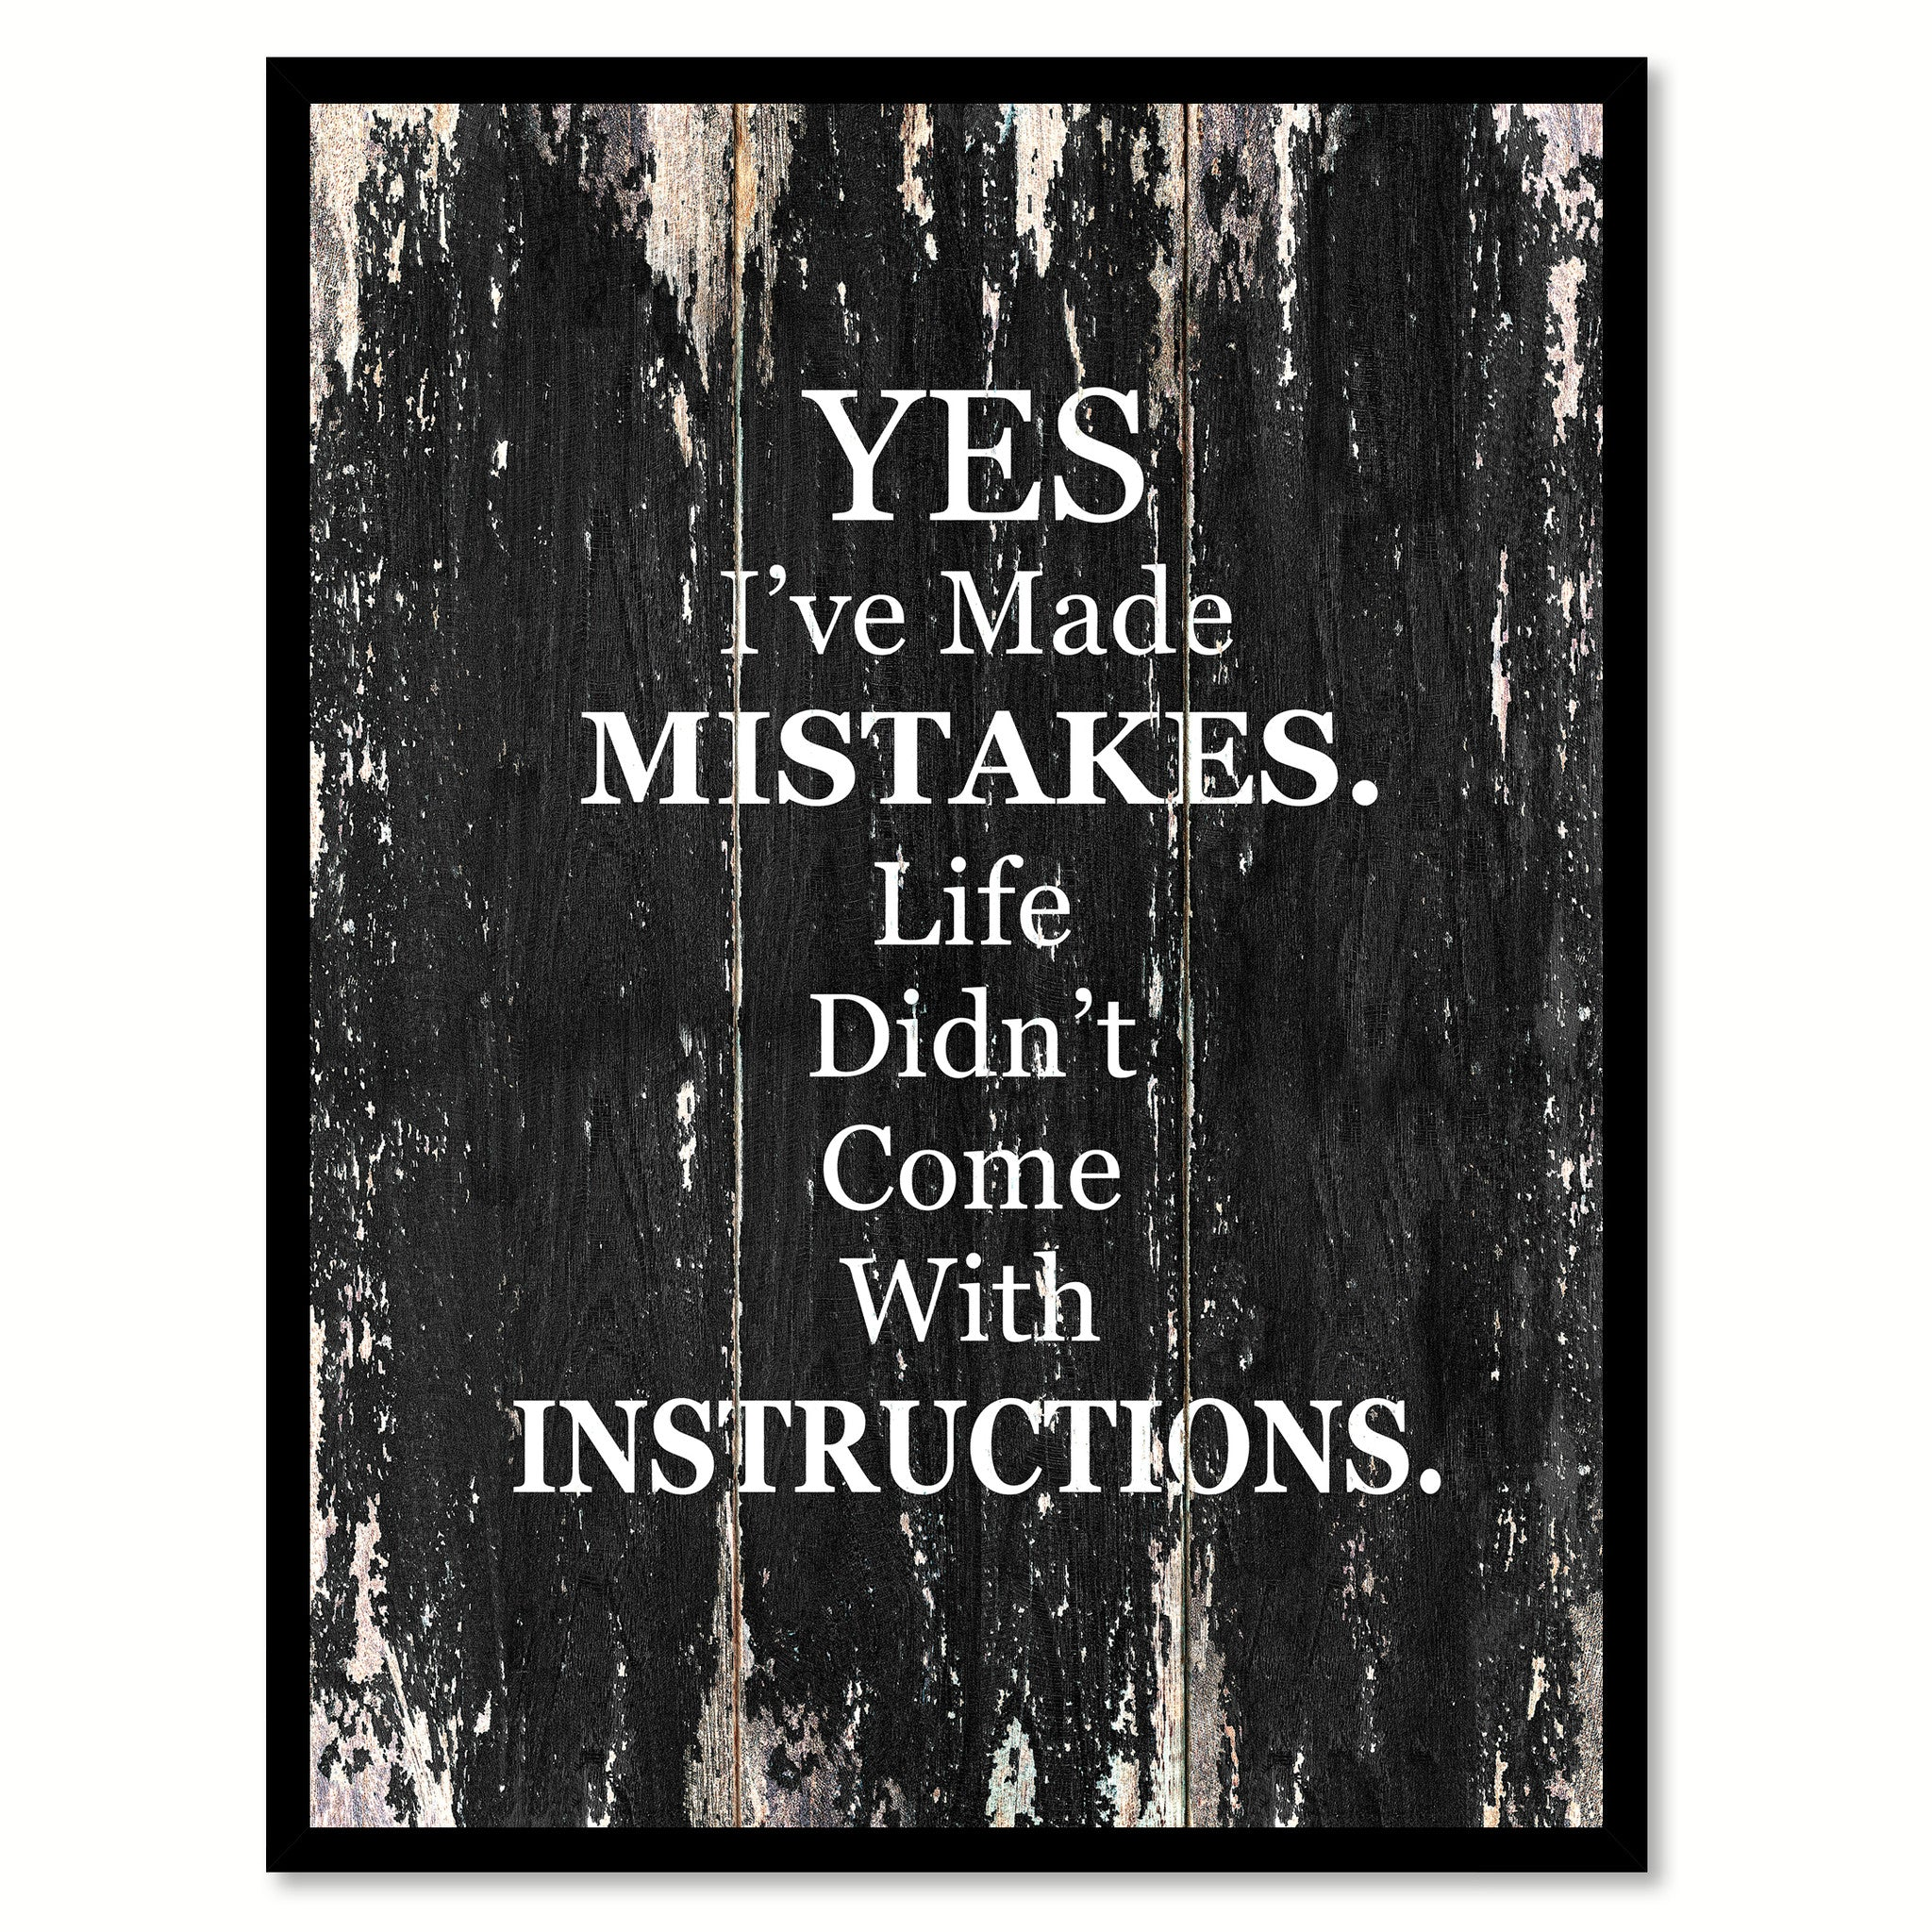 Yes Ive Made Mistakes Life Didnt Come With Instructions